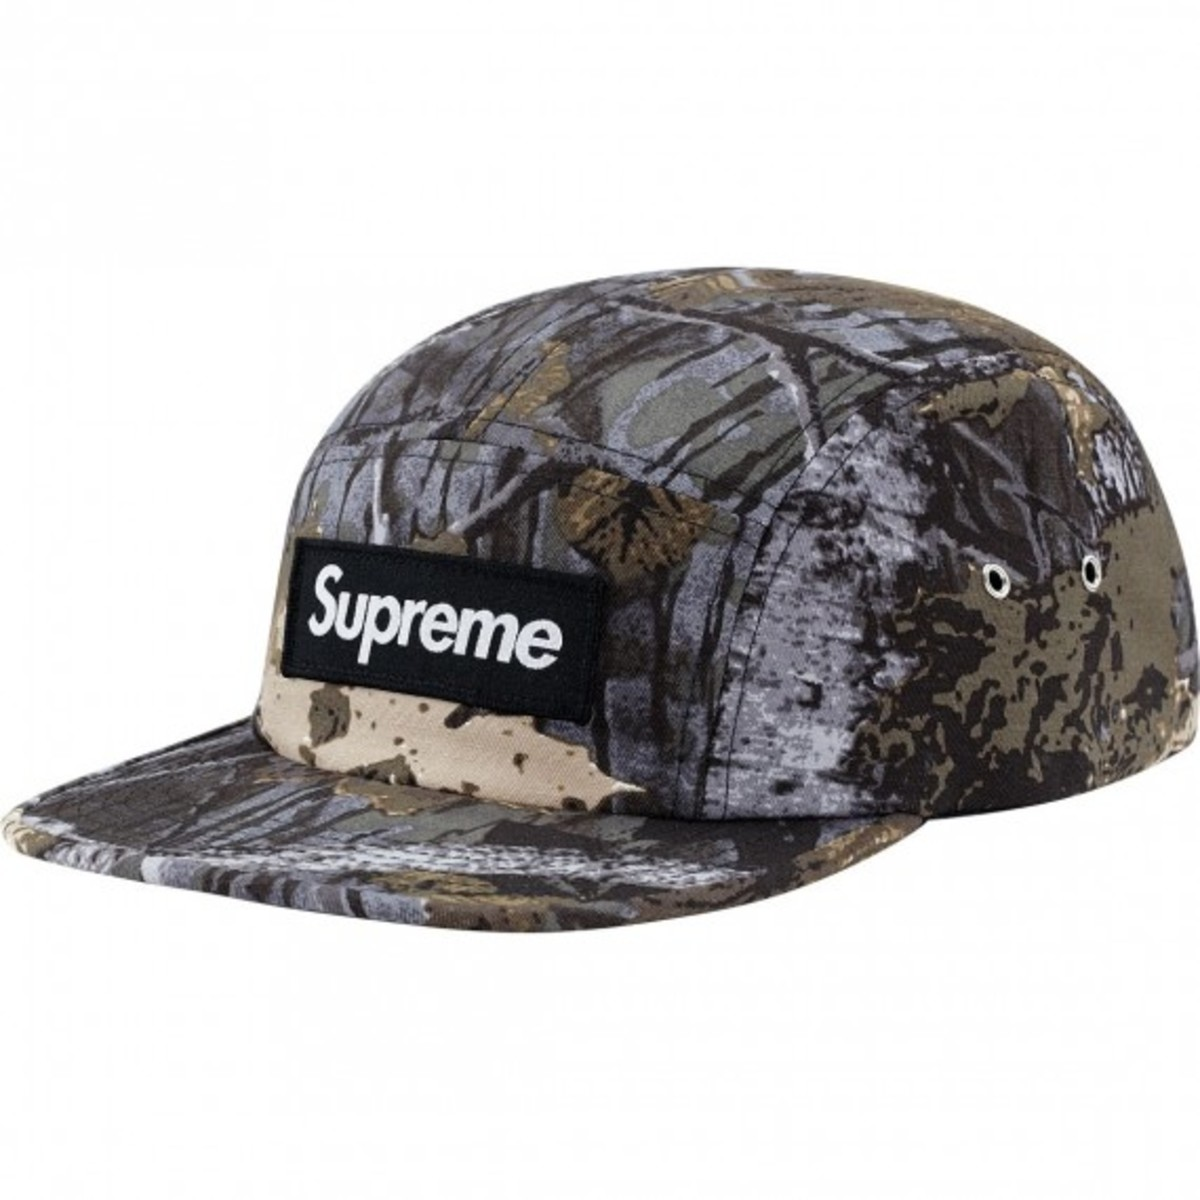 supreme-fall-winter-2011-collection-available-now-24